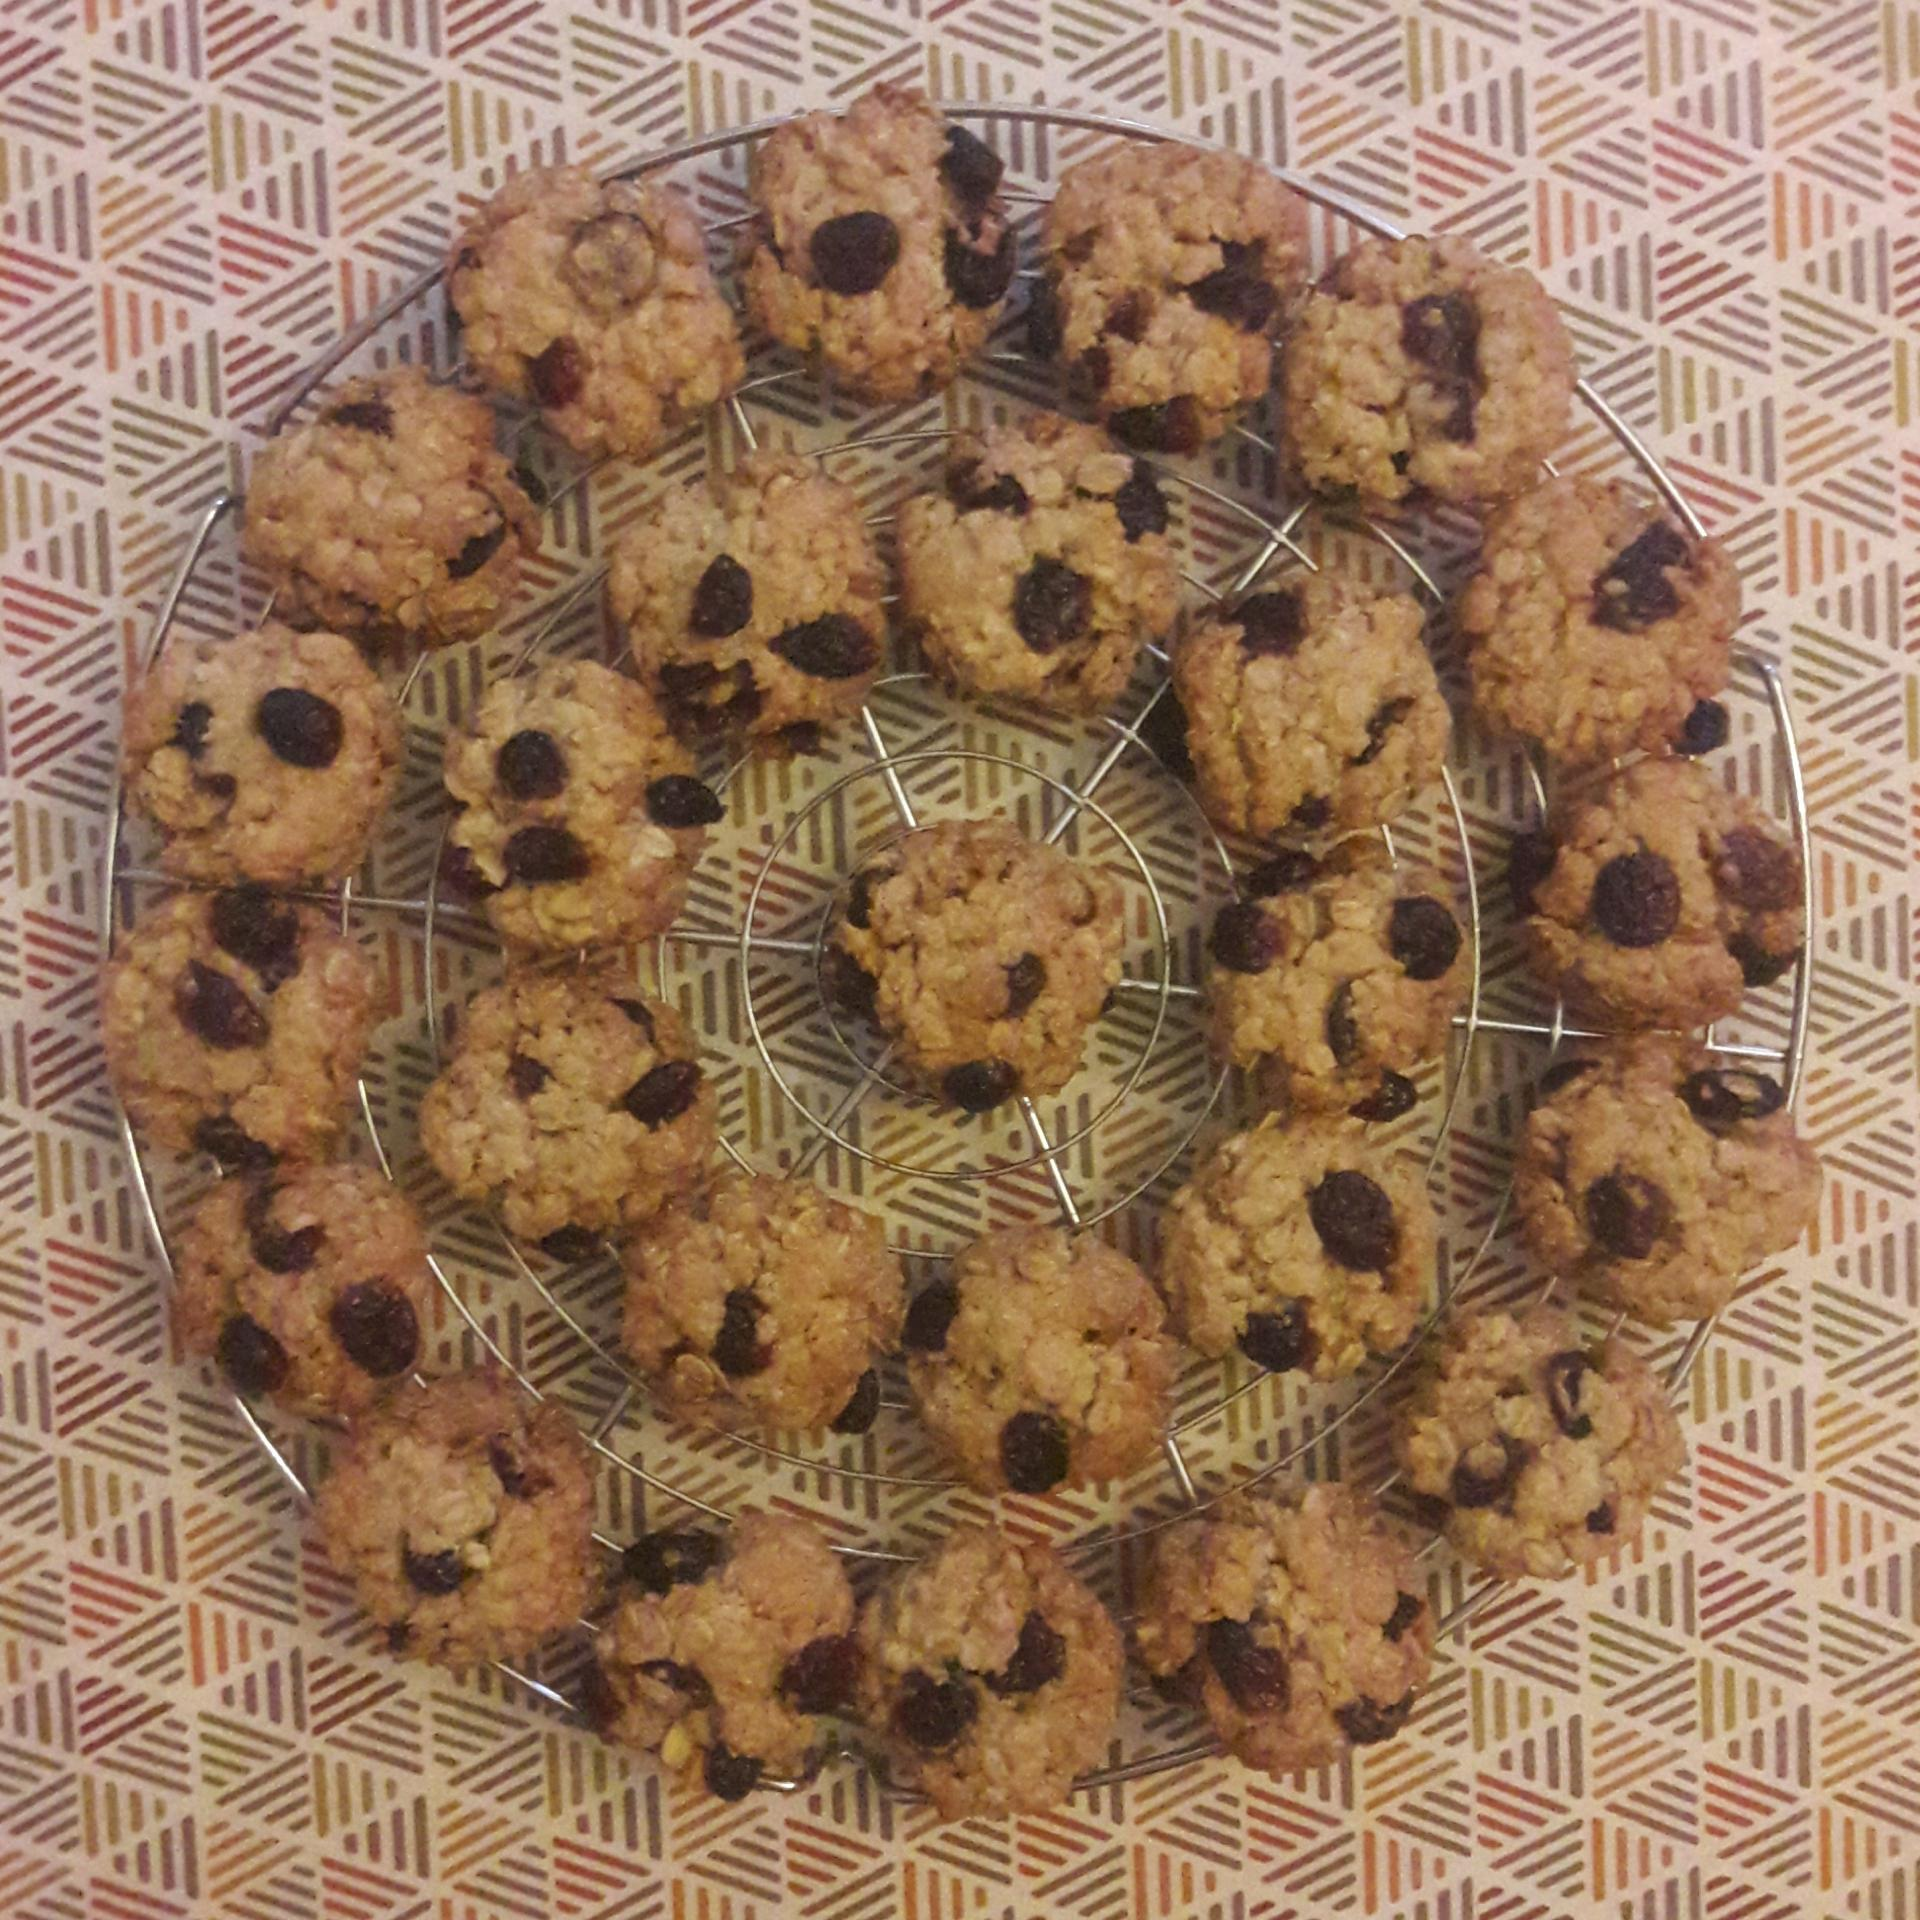 20210910 oat biscuits 1